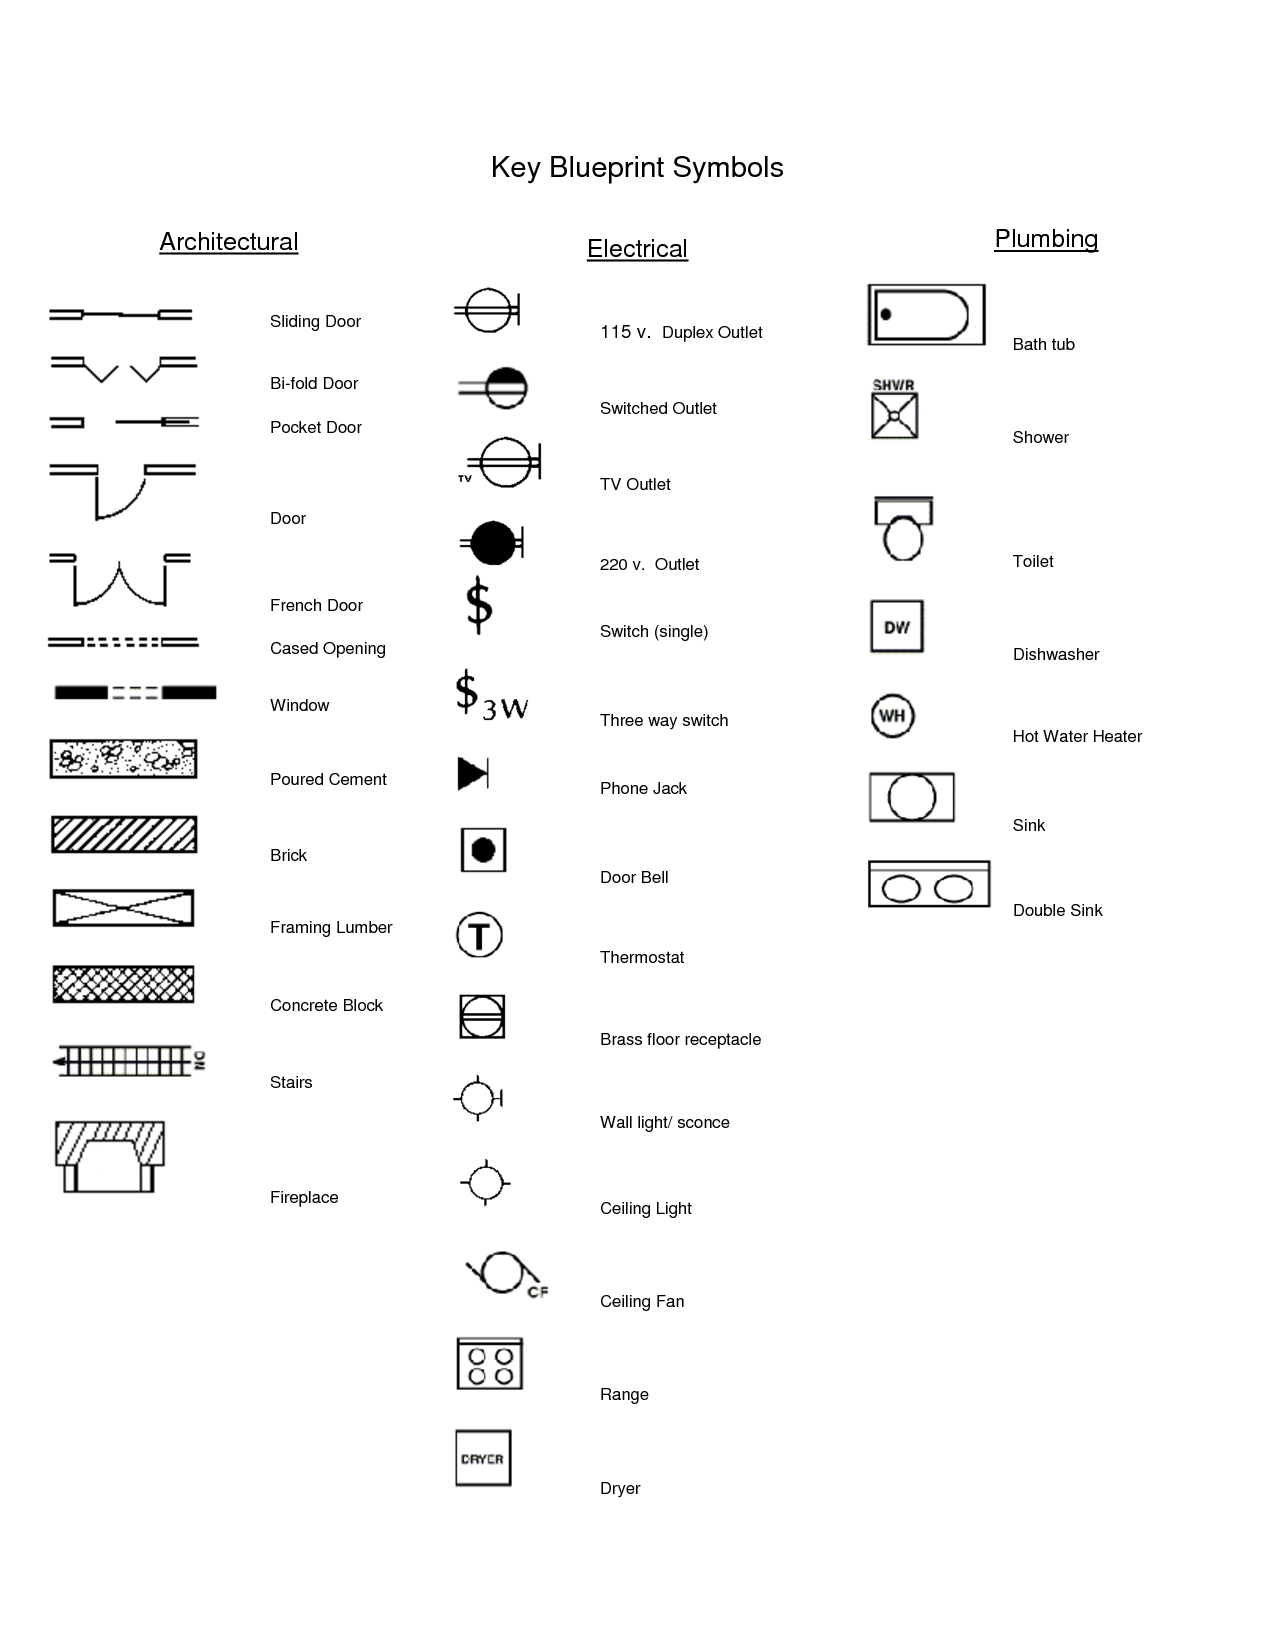 new electrical symbols for outlet diagram wiringdiagram diagramming diagramm visuals  [ 1275 x 1650 Pixel ]